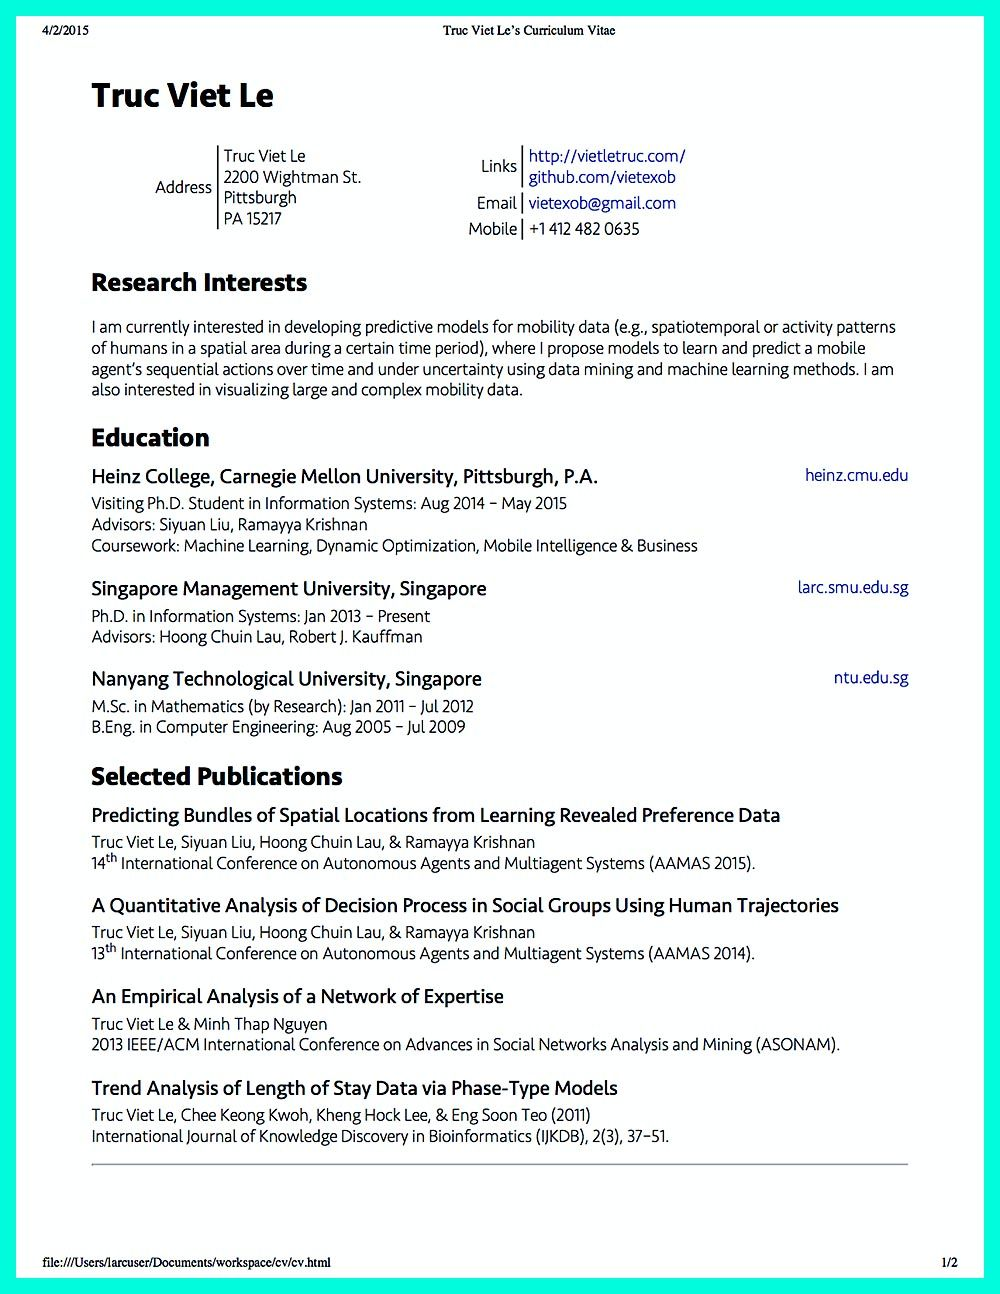 data scientist resume objective of  free templates